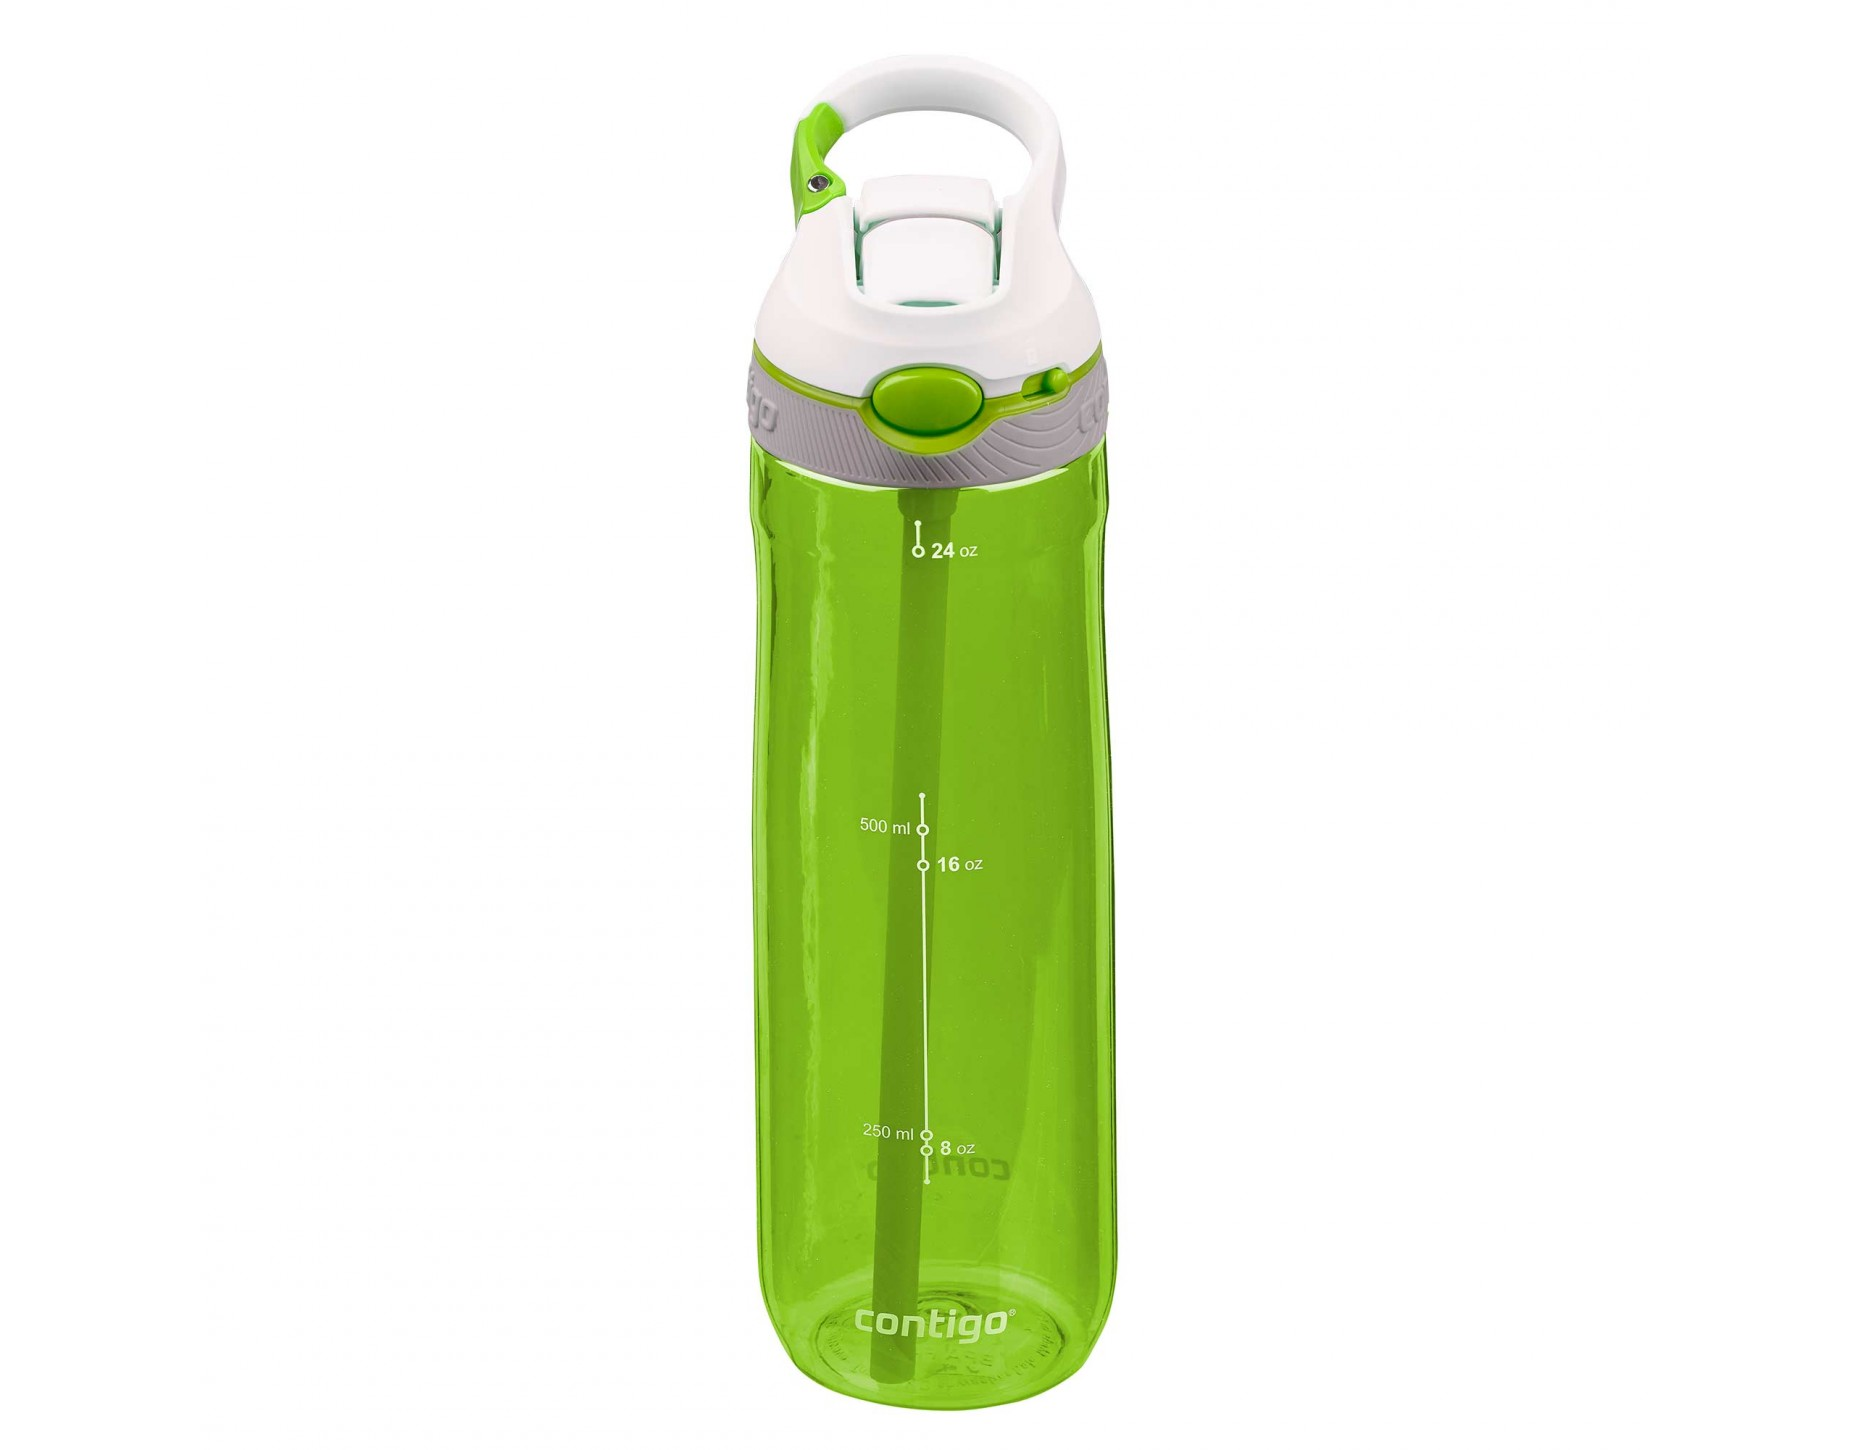 Contigo Drink Bottle Parts